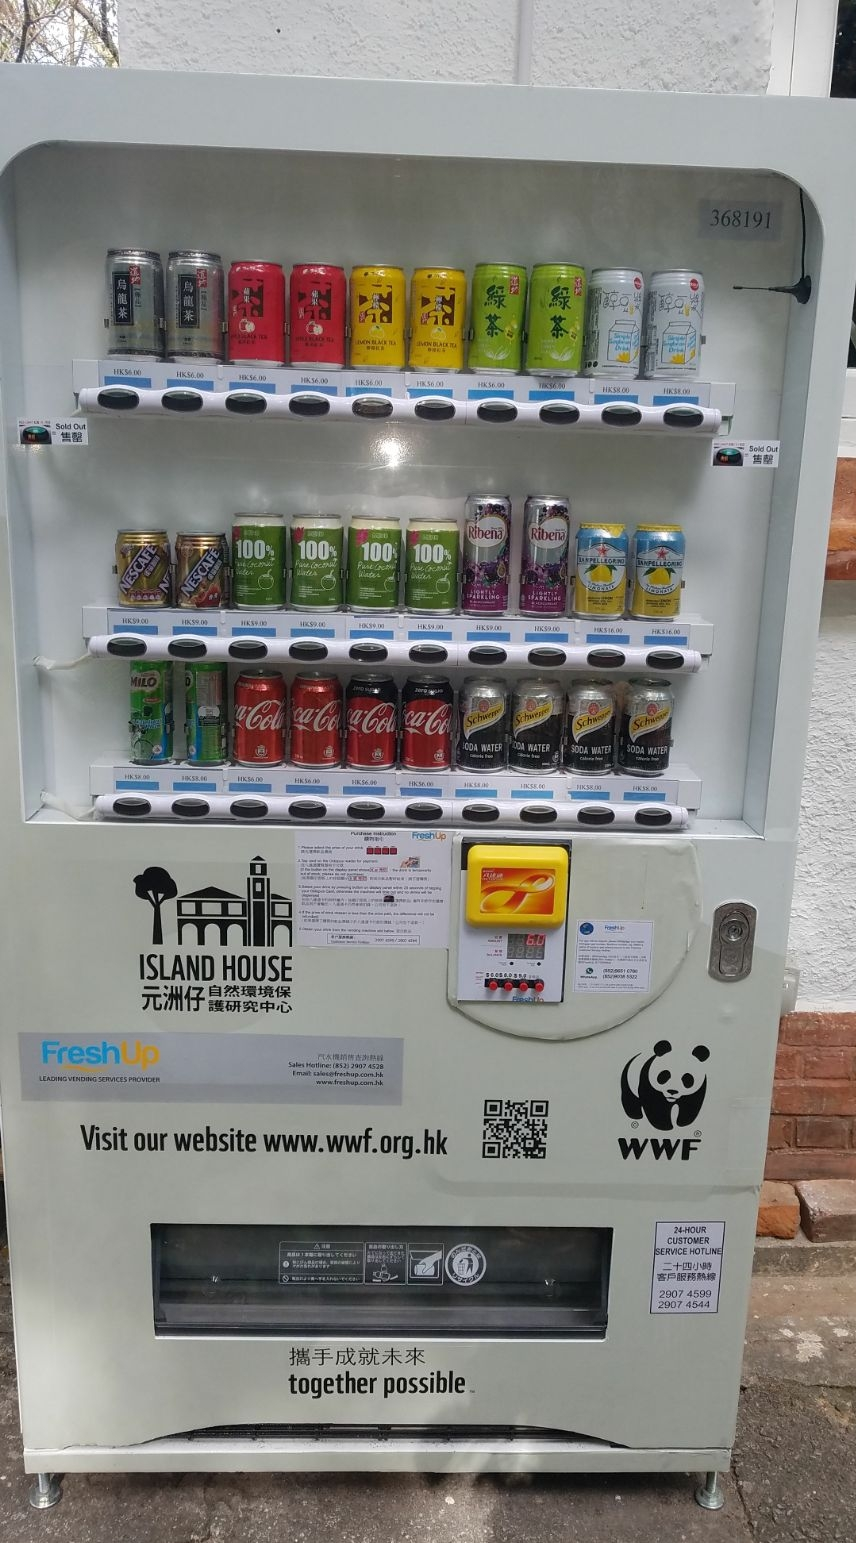 Freshup, vending machine hk, interactive, food, beverage, smart retail, convenient, vending services, professional, corporations, WWF